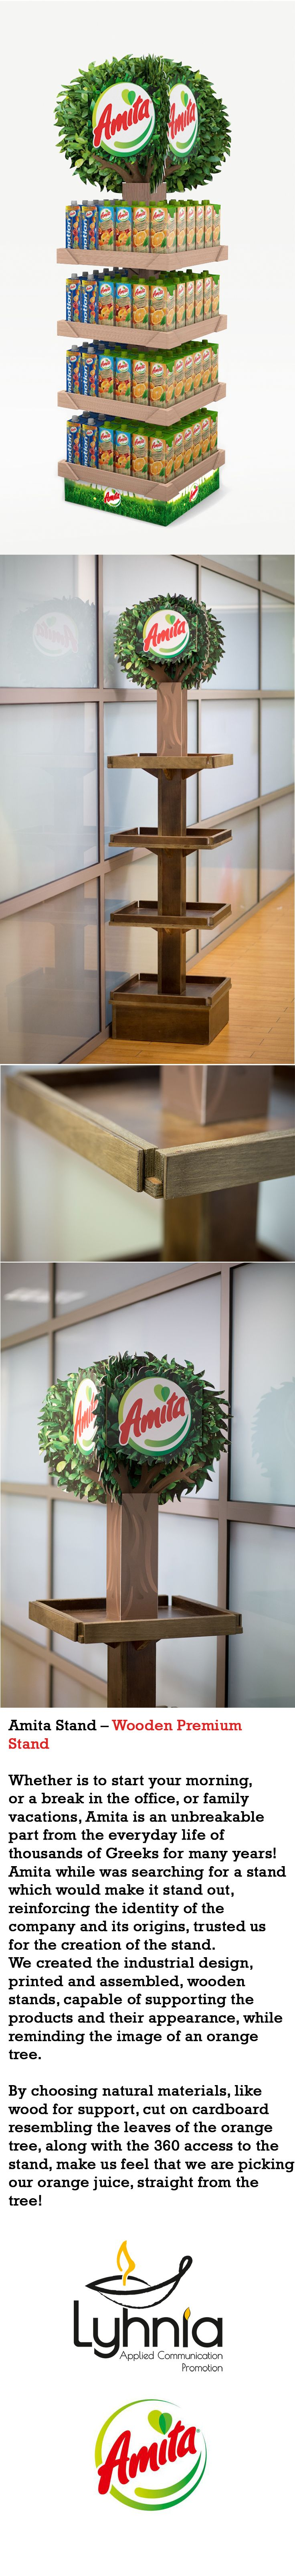 Amita while was searching for a stand which would make it stand out, while reinforcing the identity of the company and its origins,trusted us for the creation of the stand. We created the industrial design, printed and assembled, wooden stands, capable of supporting the products and their appearance,while reminding the image of an orange tree.   By choosing natural materials, like wood for support, cut on cardboard resembling the leaves of the orange tree, along with the 360 access to the…